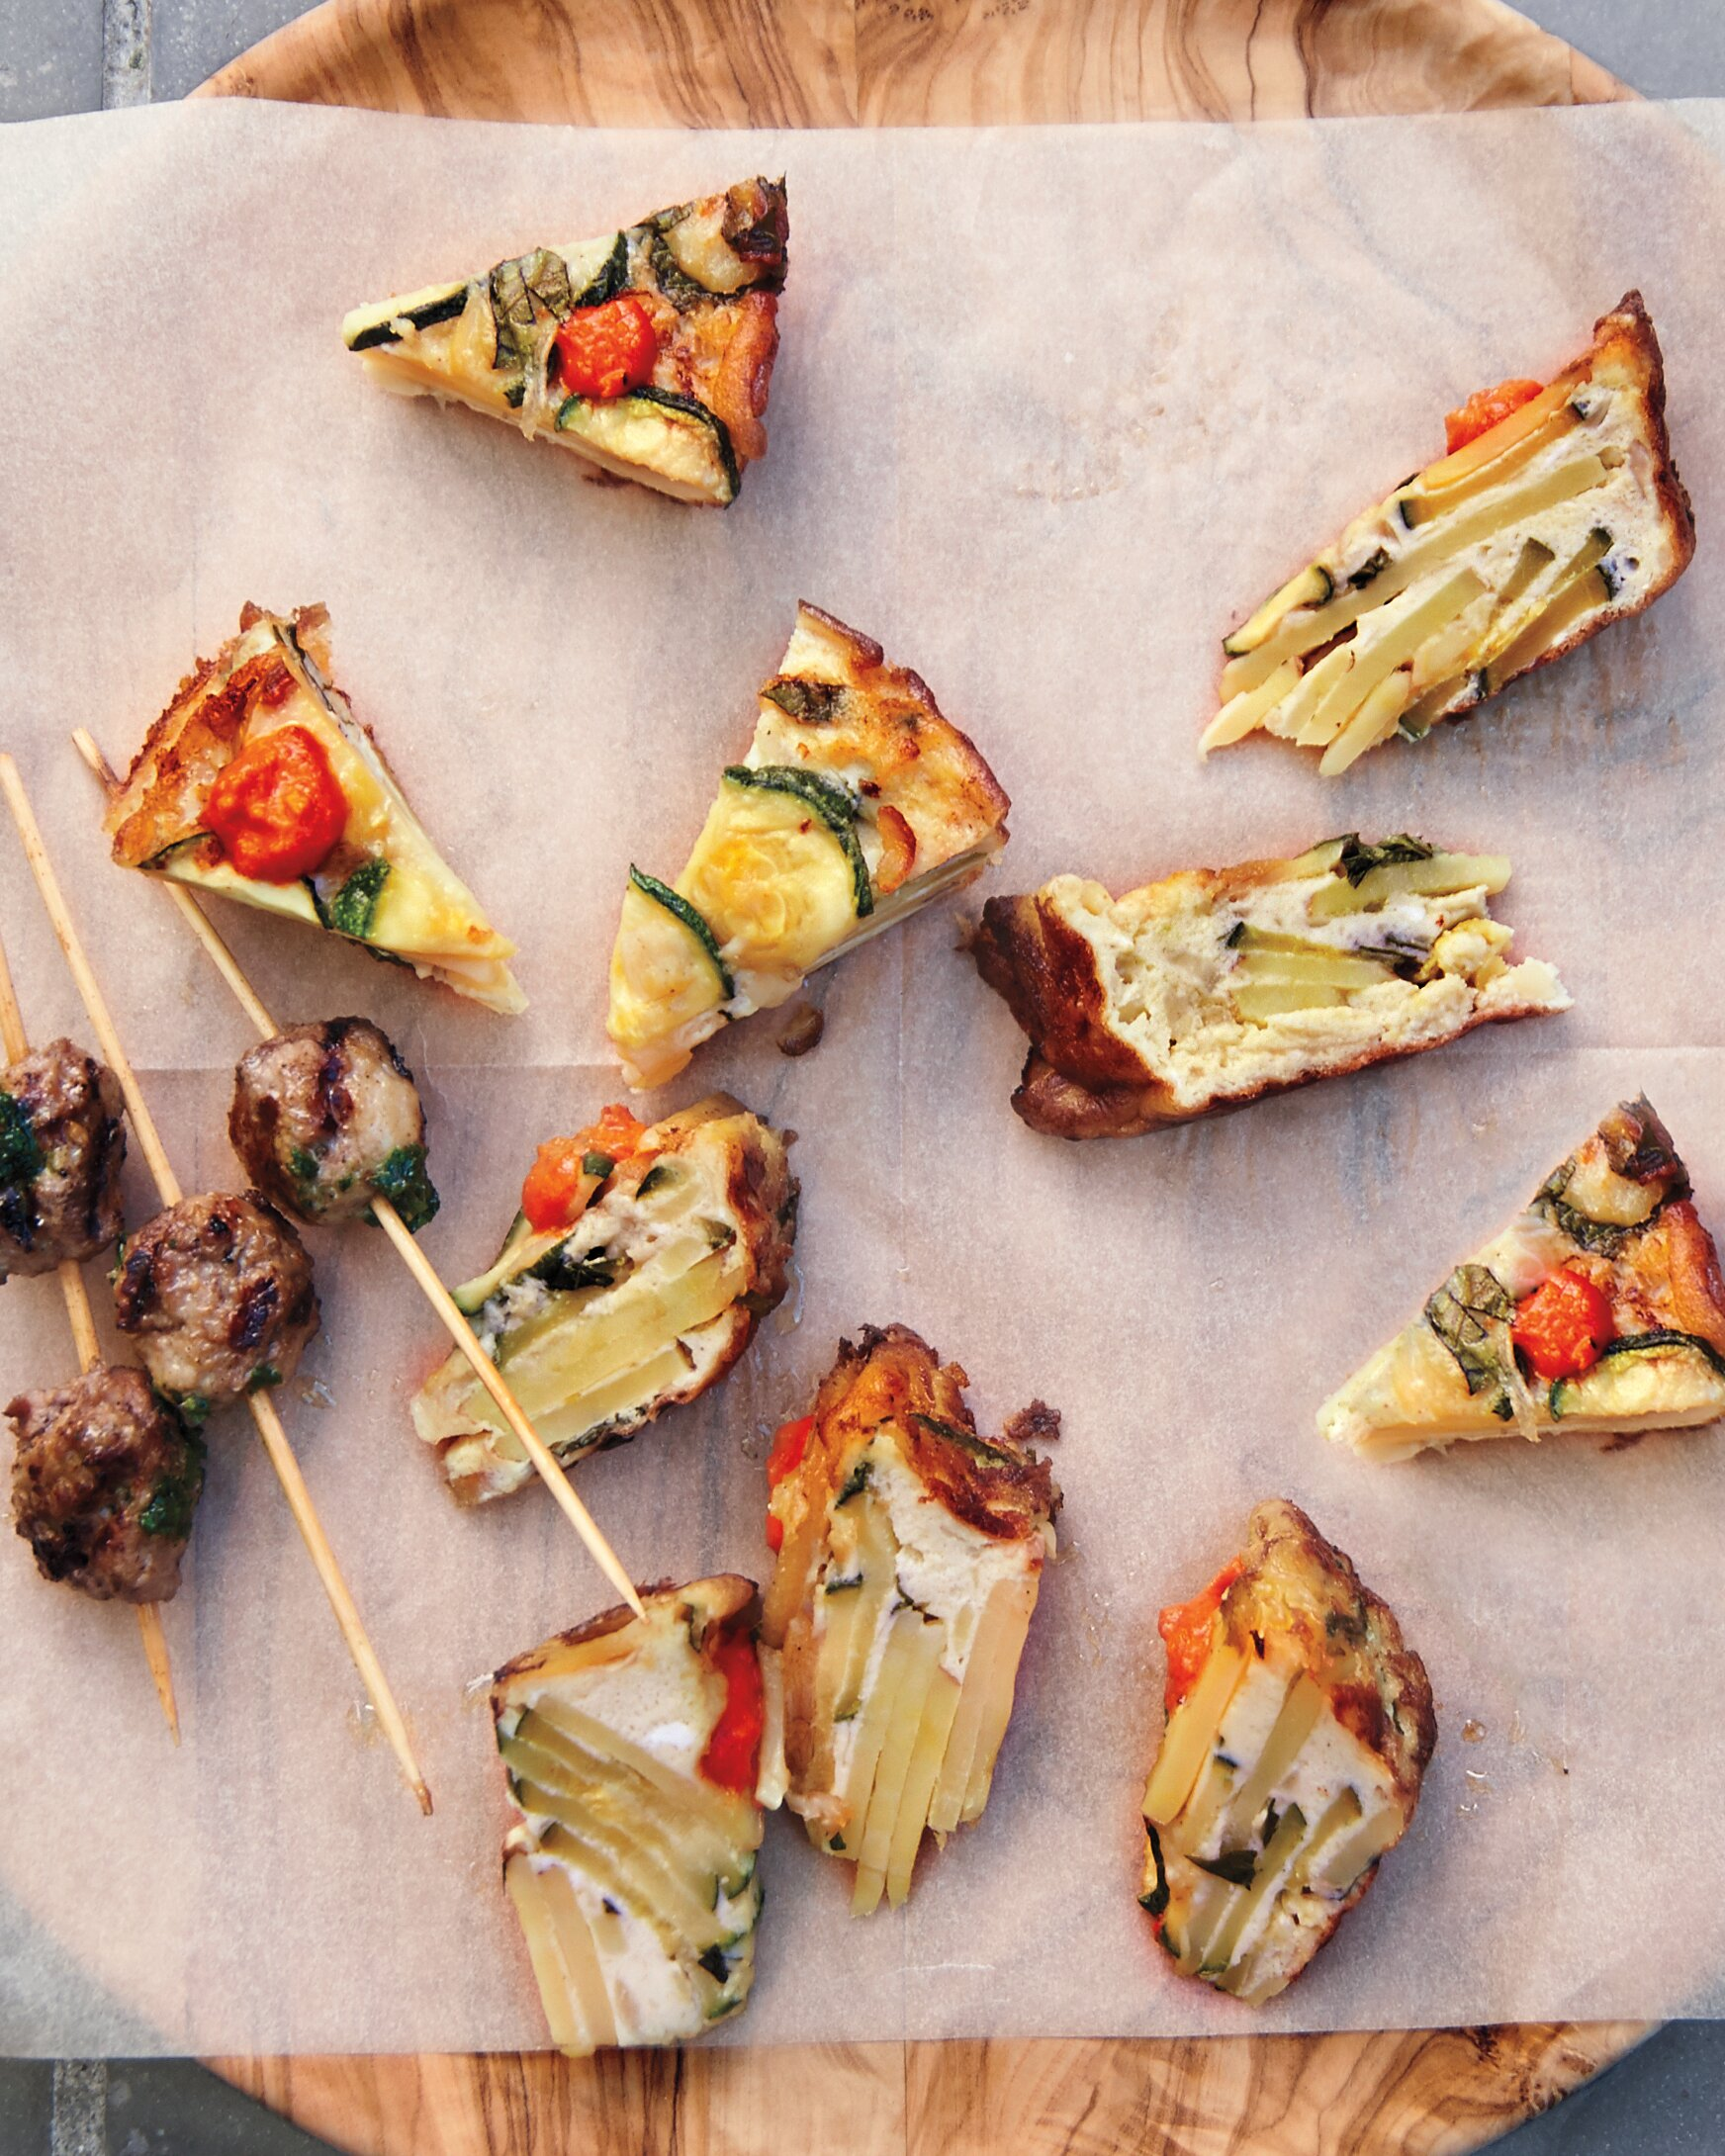 TAPAS RECIPES THAT WILL BRING A TASTE OF SPAIN TO YOUR NEXT